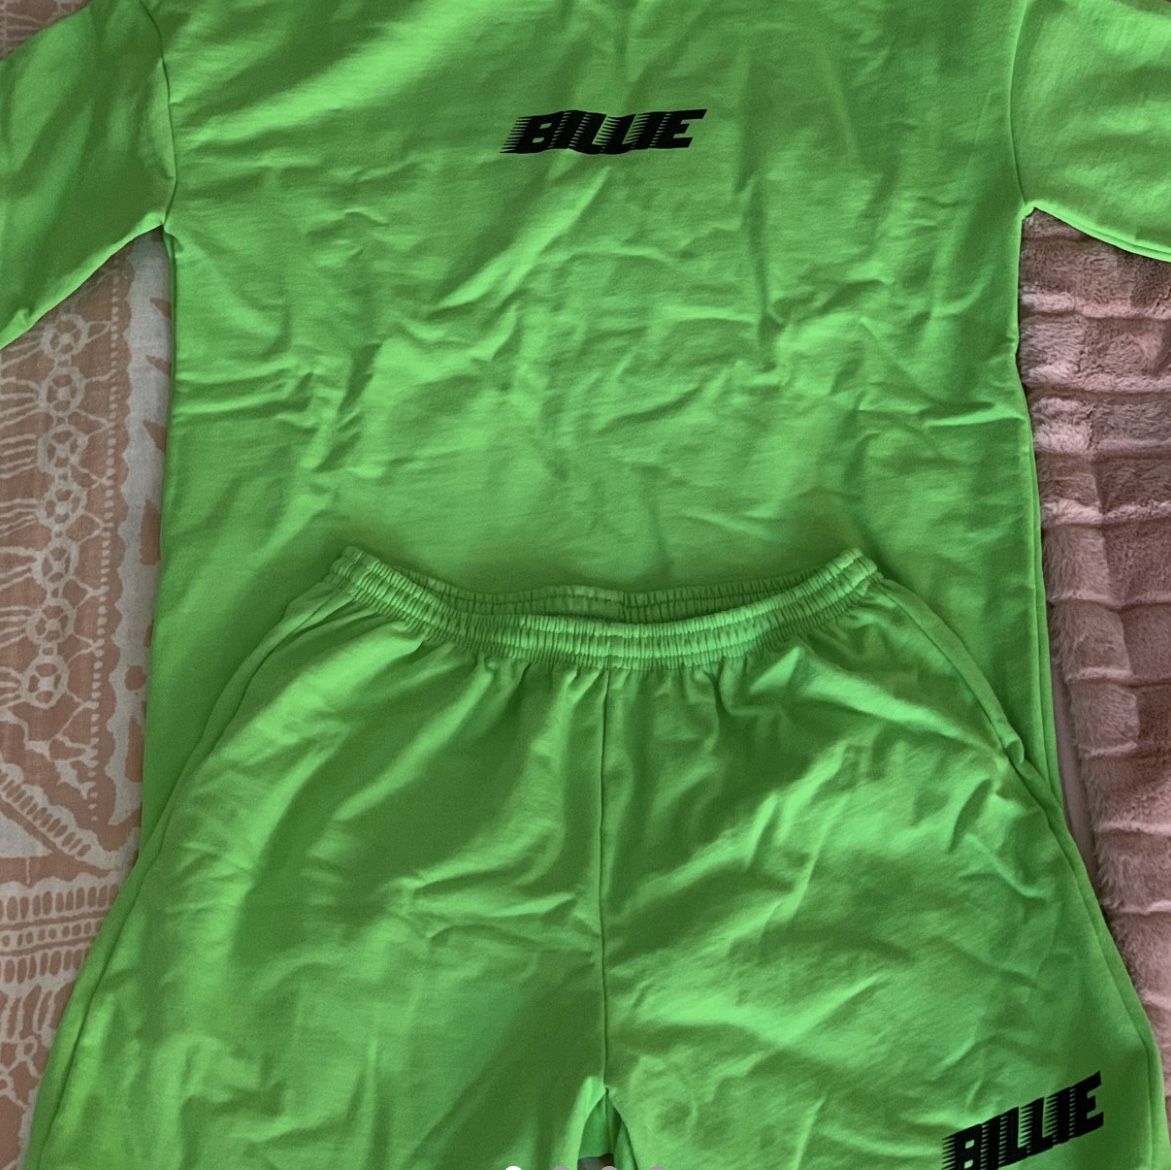 Billie Eilish Green Slime Sweatshirt Tee And Depop